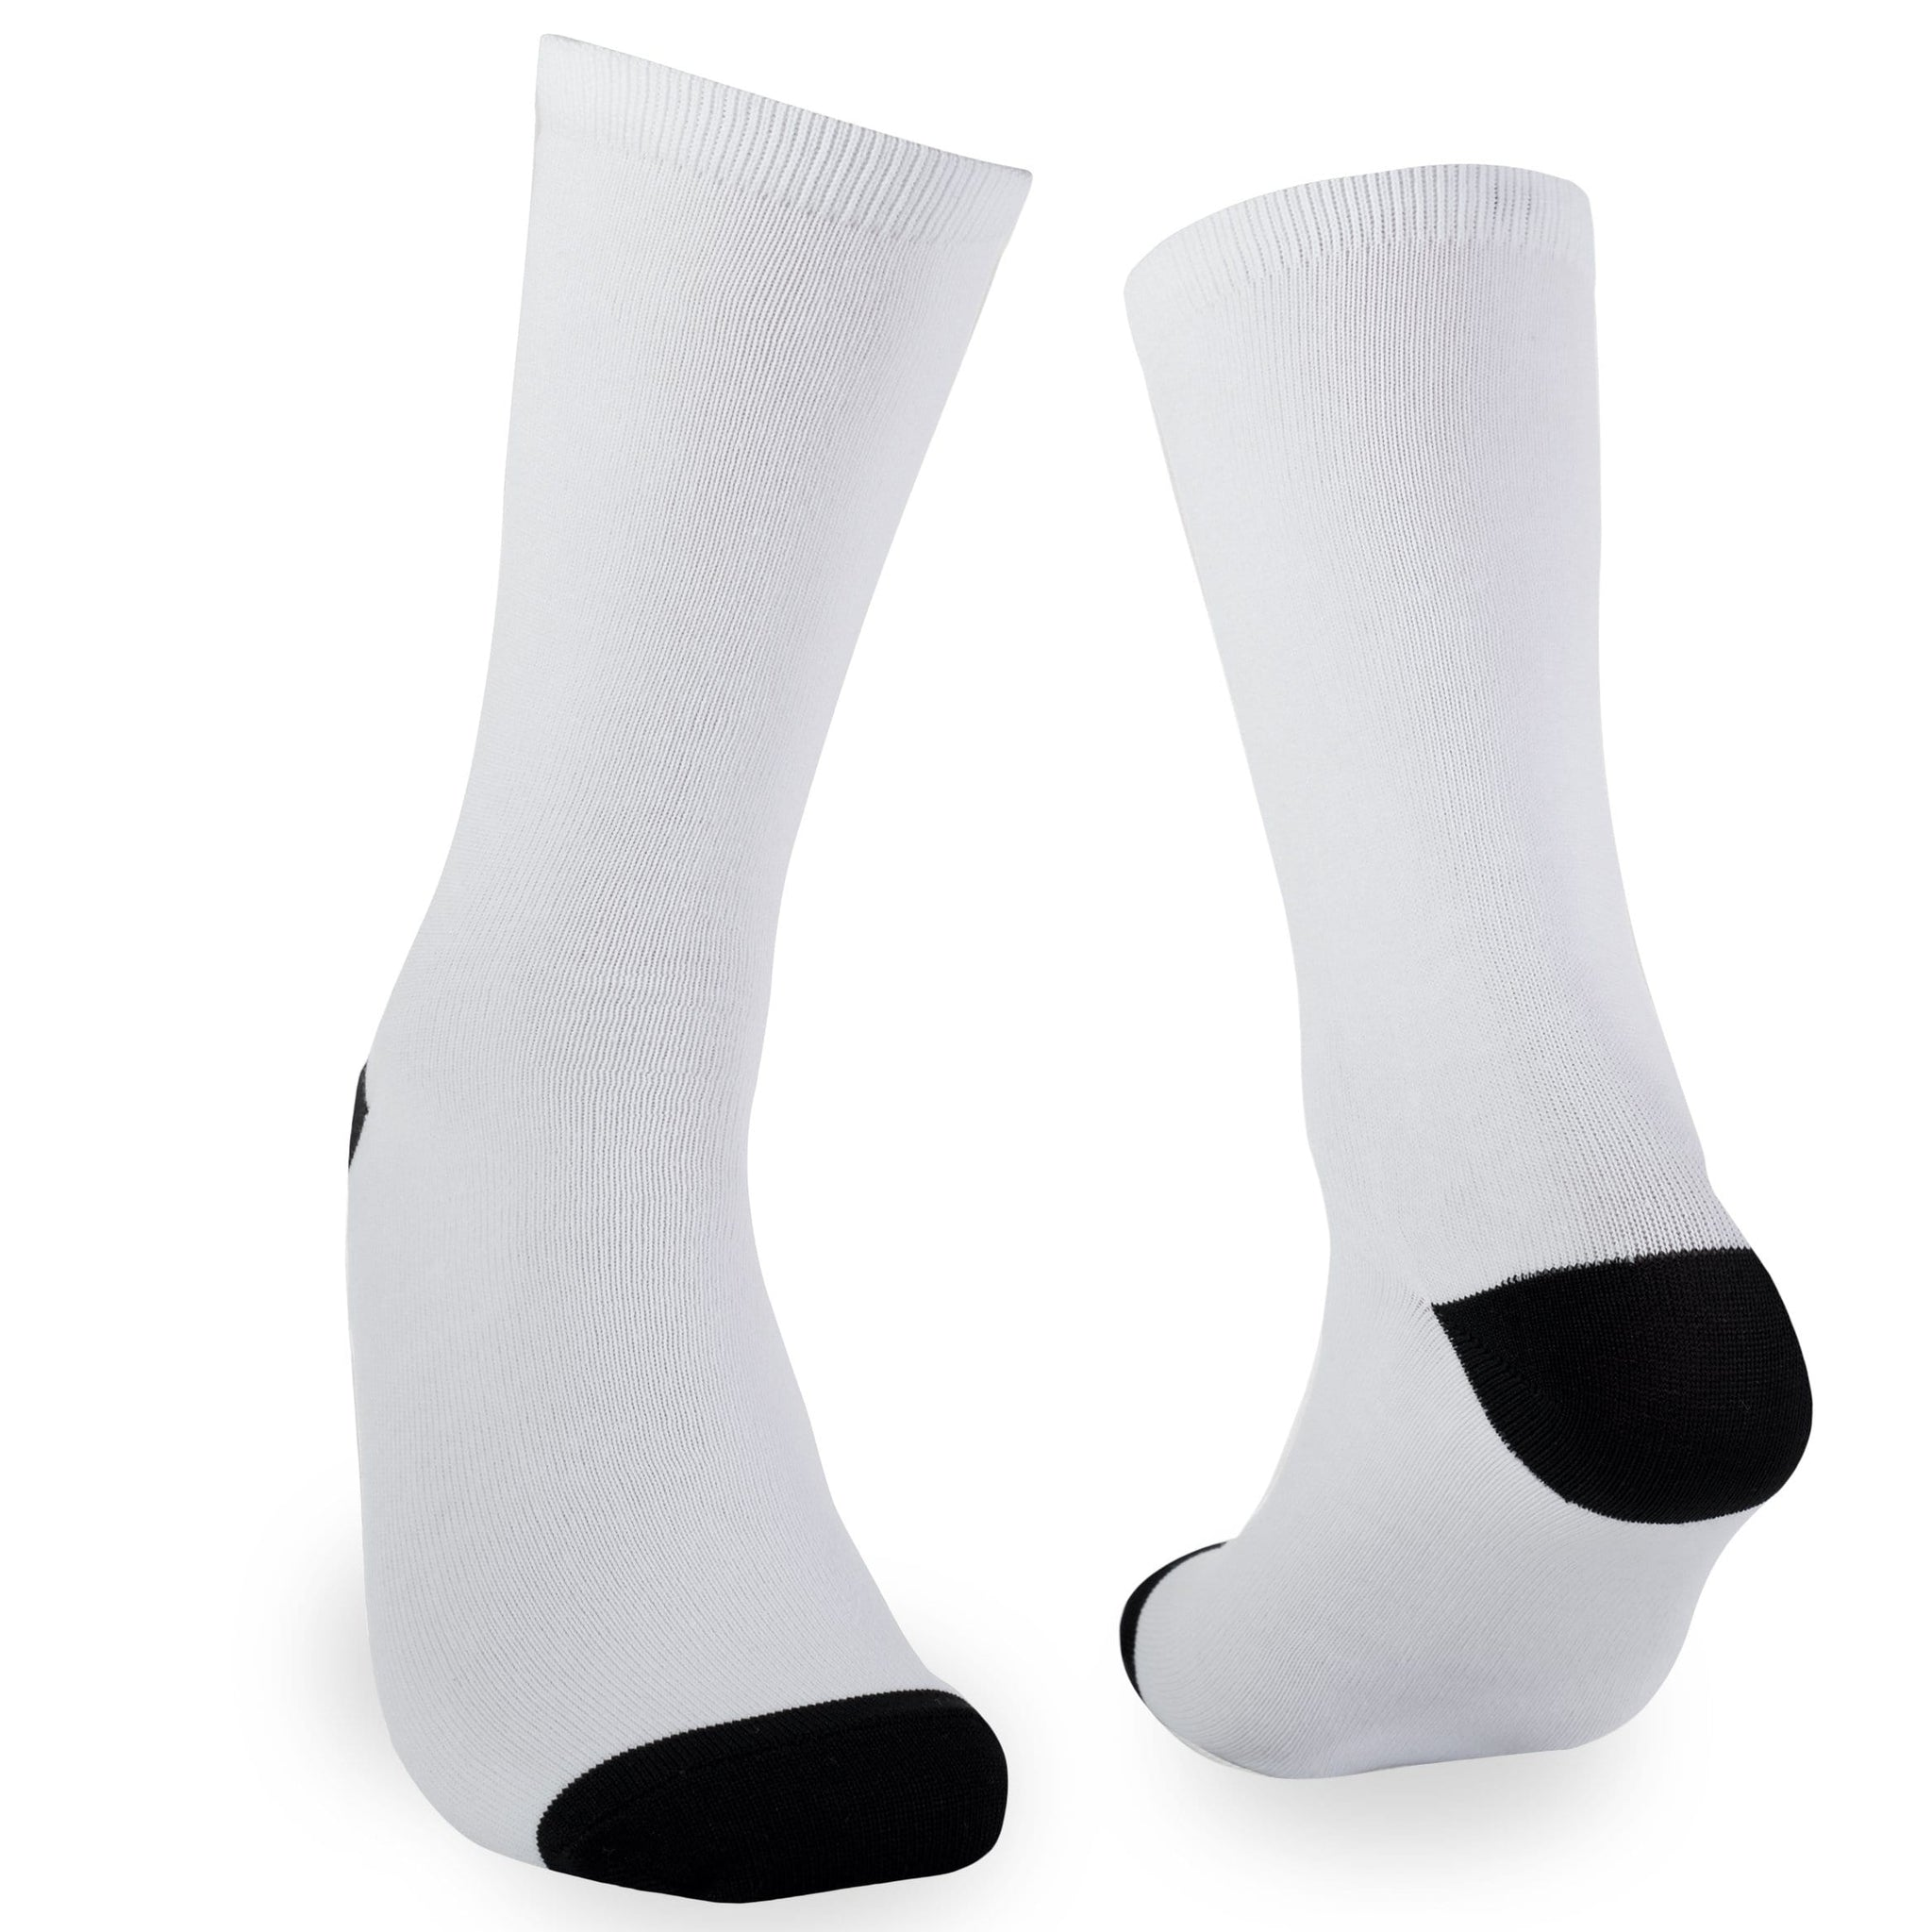 Blank Dress Socks for Sublimation